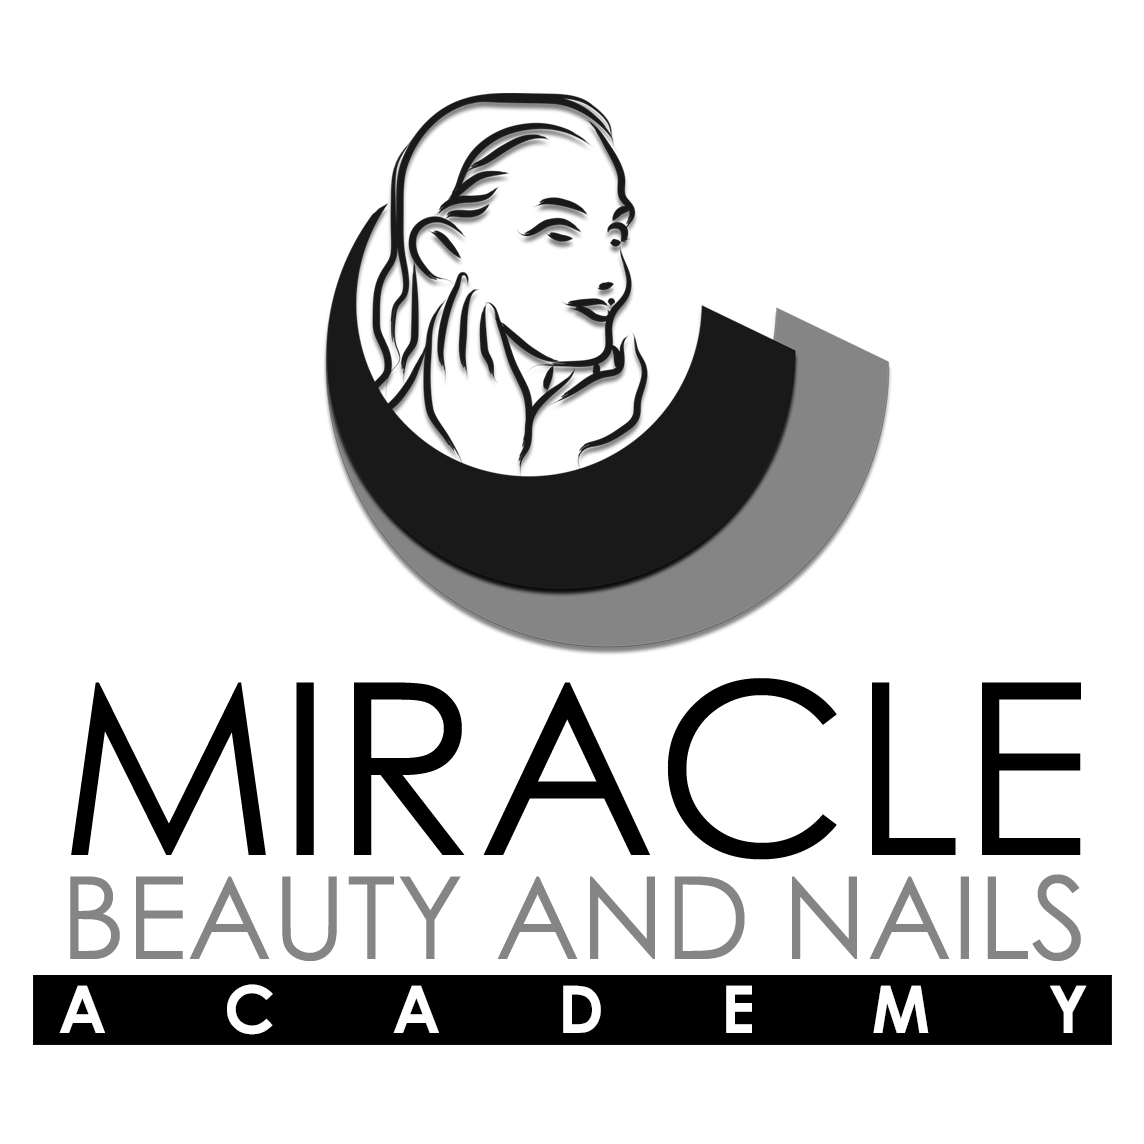 Miracle Beauty and Nails Academy image 4